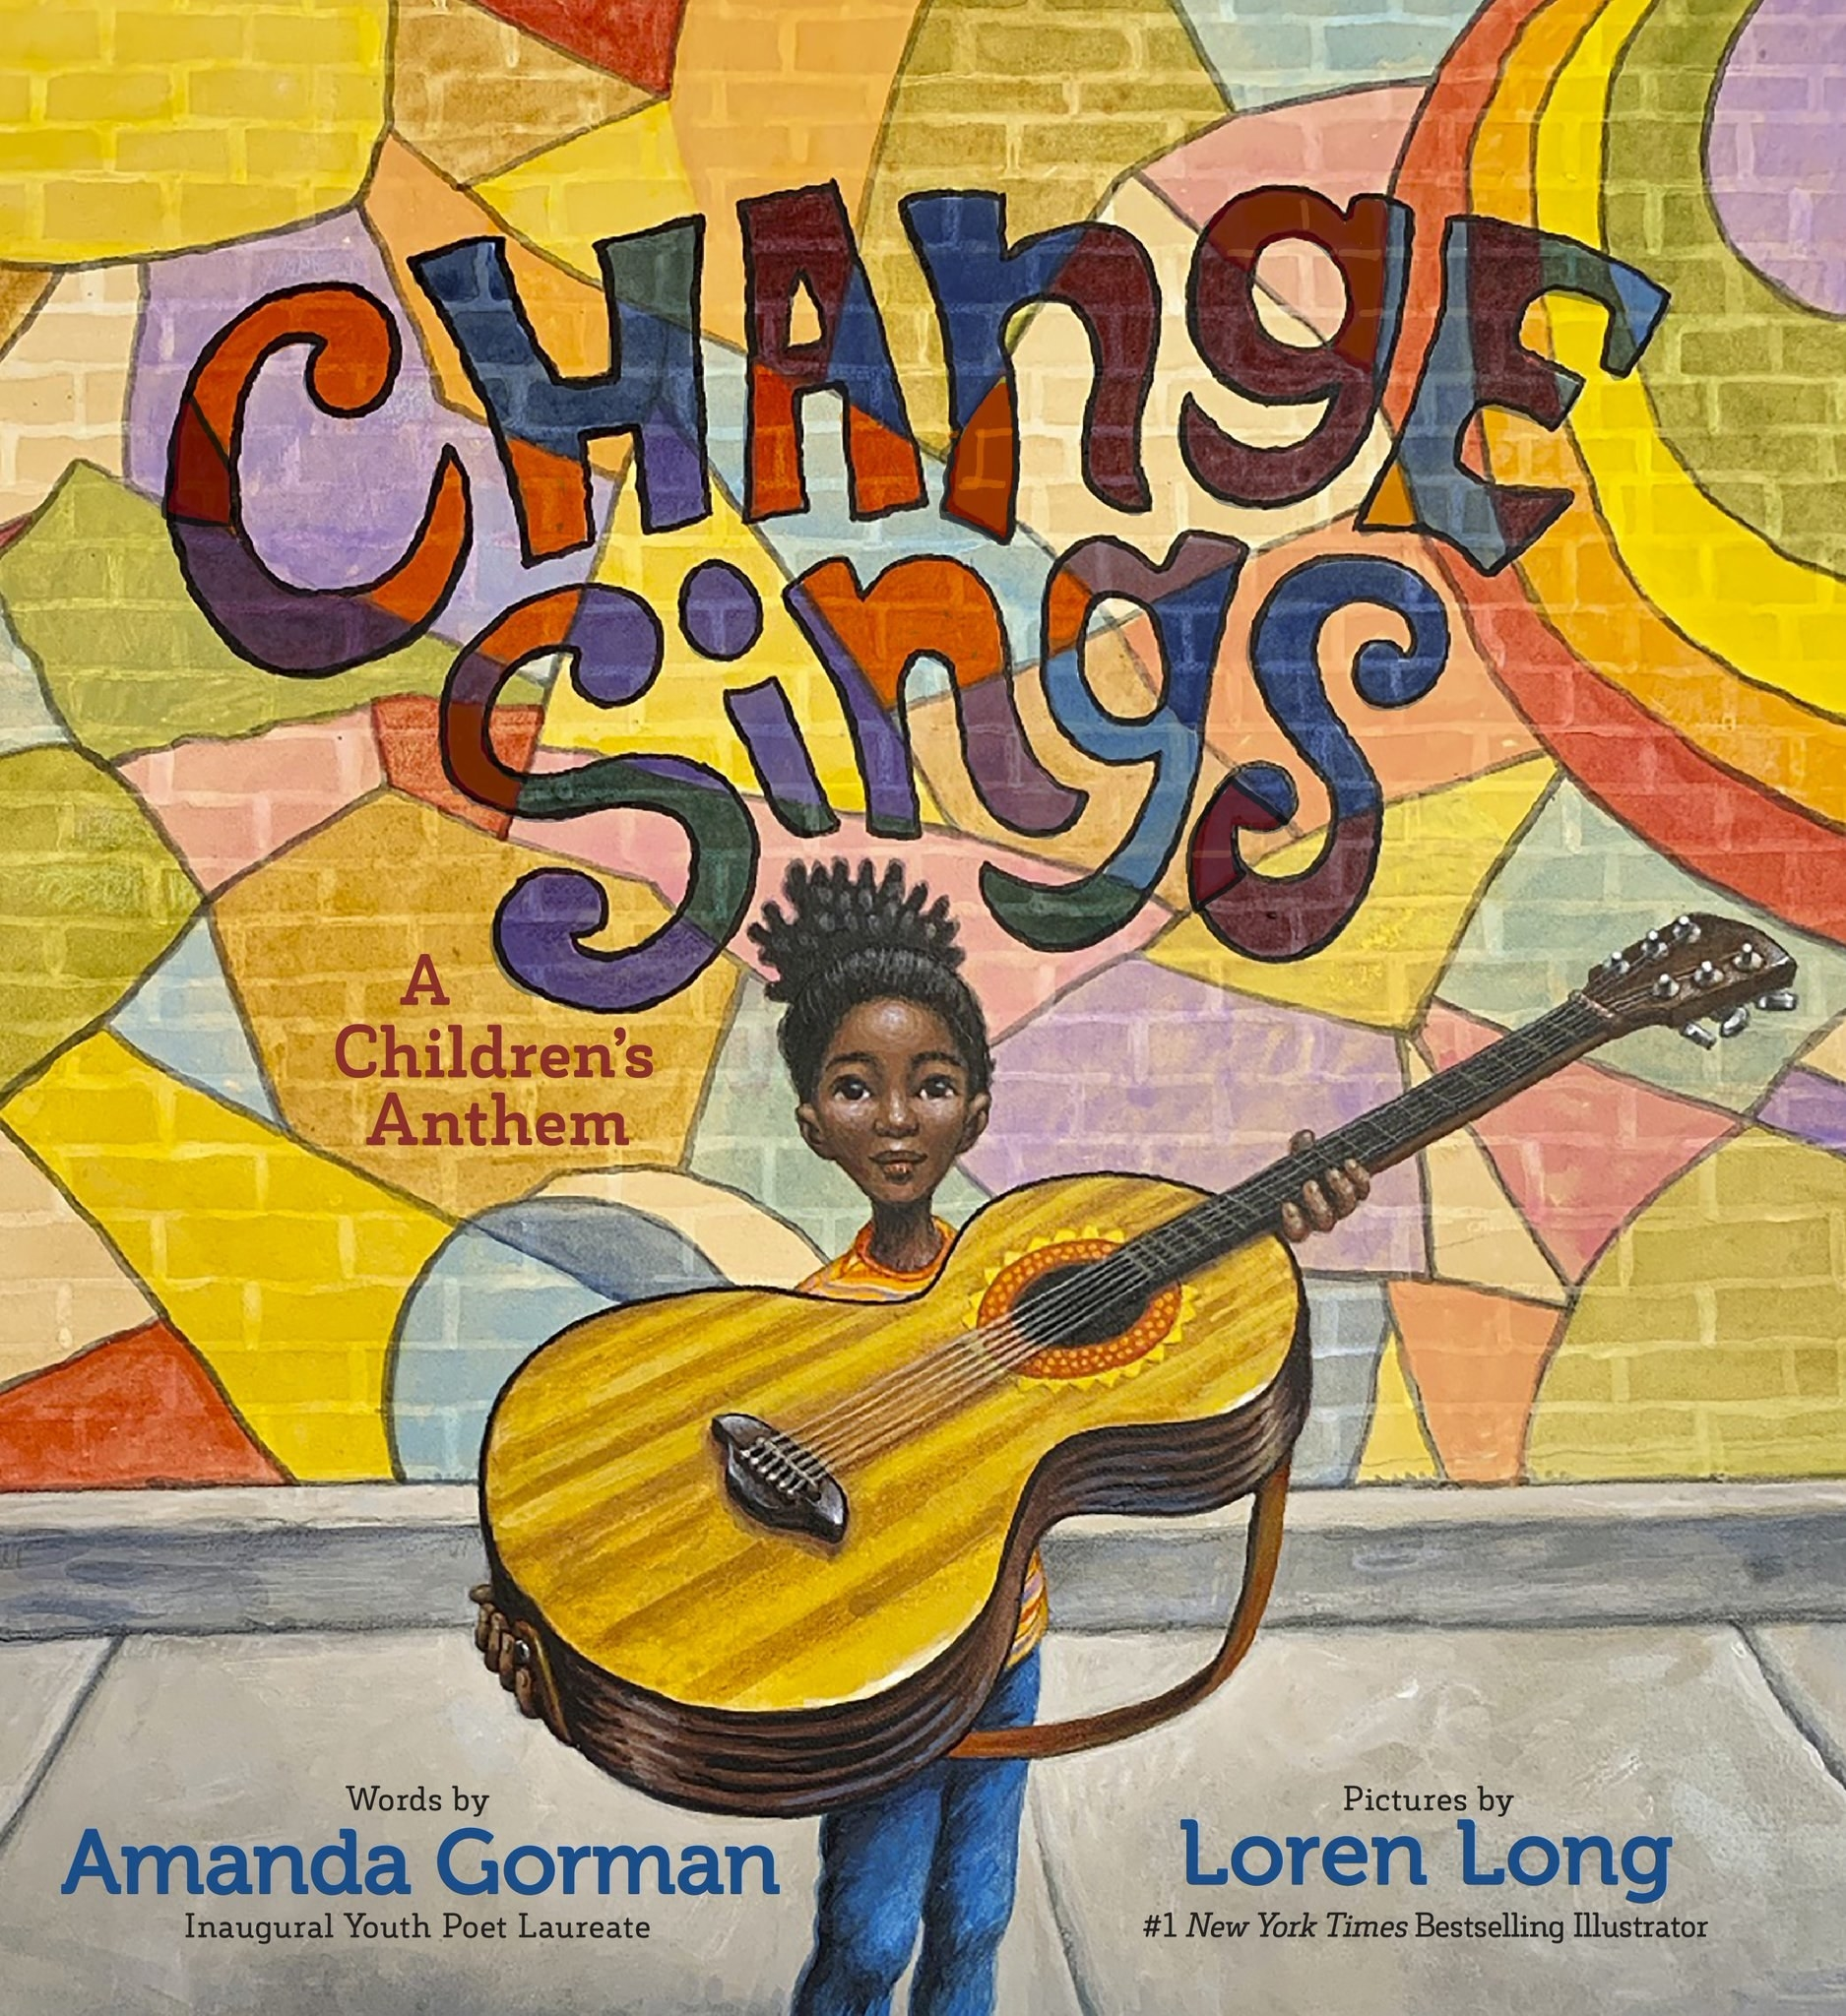 The cover of the book features an Black girl holding a large guitar